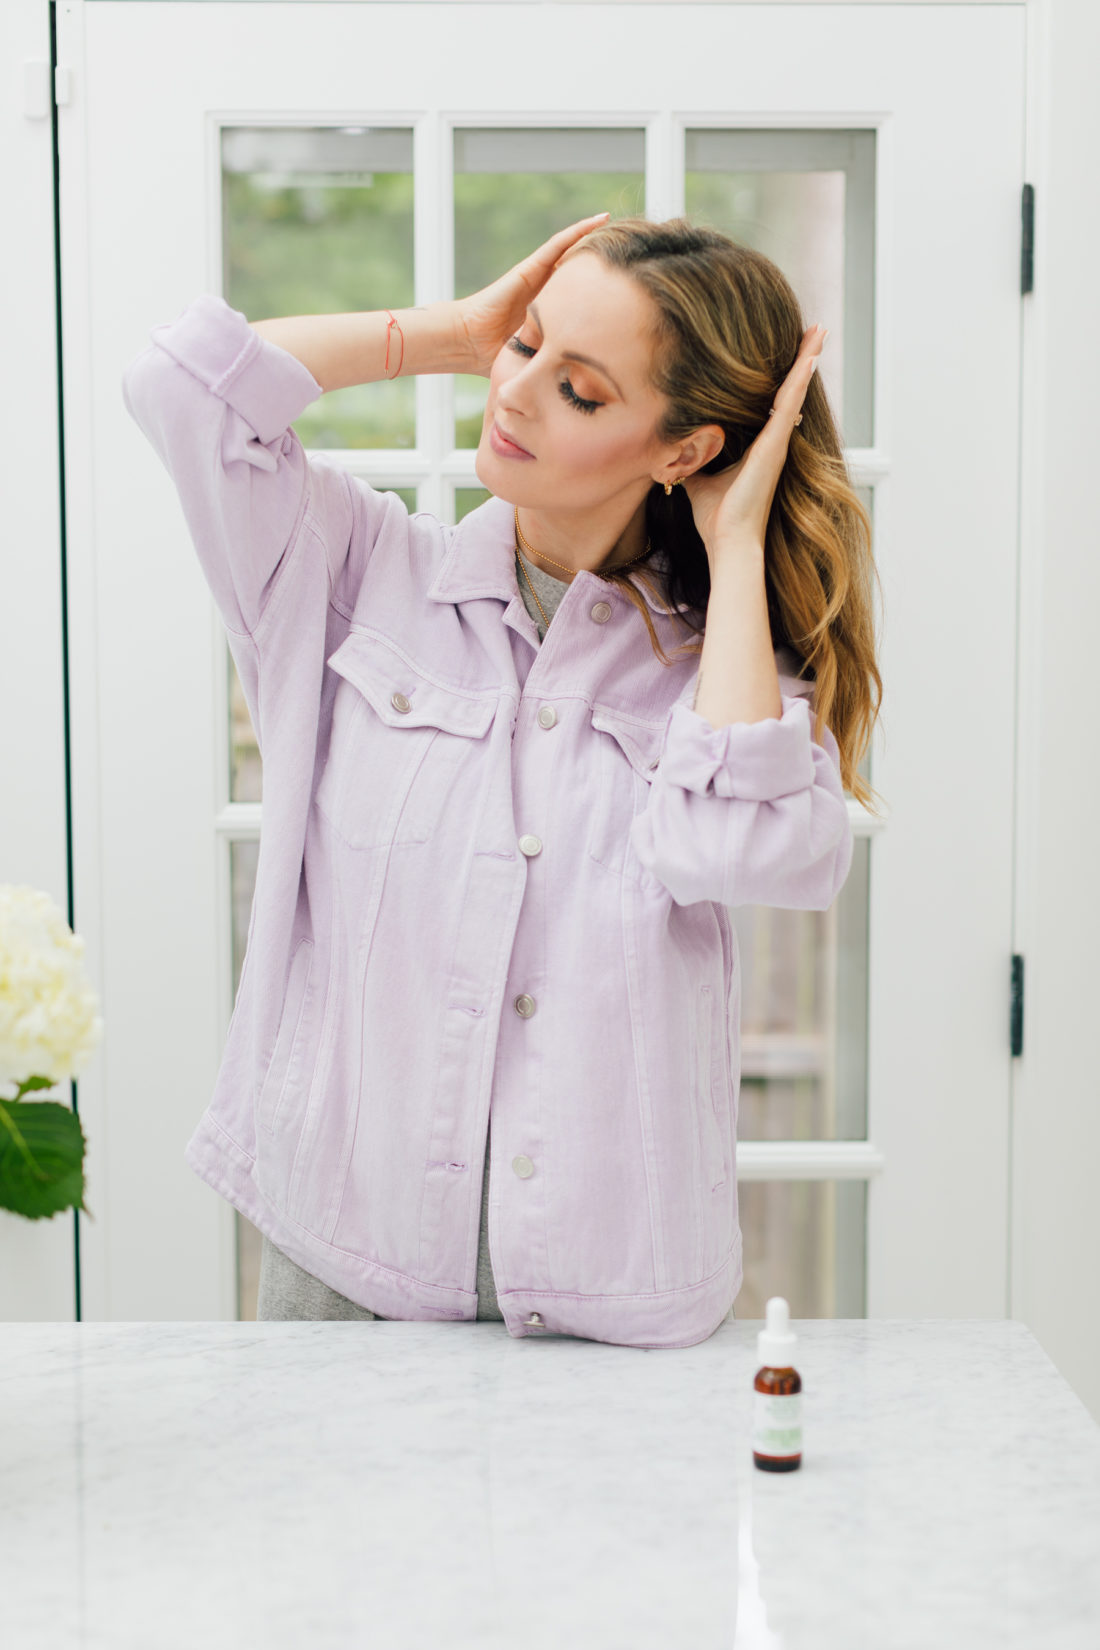 Eva Amurri Martino shares her September 2019 Obsessions which includes this Mario Badescu Rose Hips Nourishing Oil